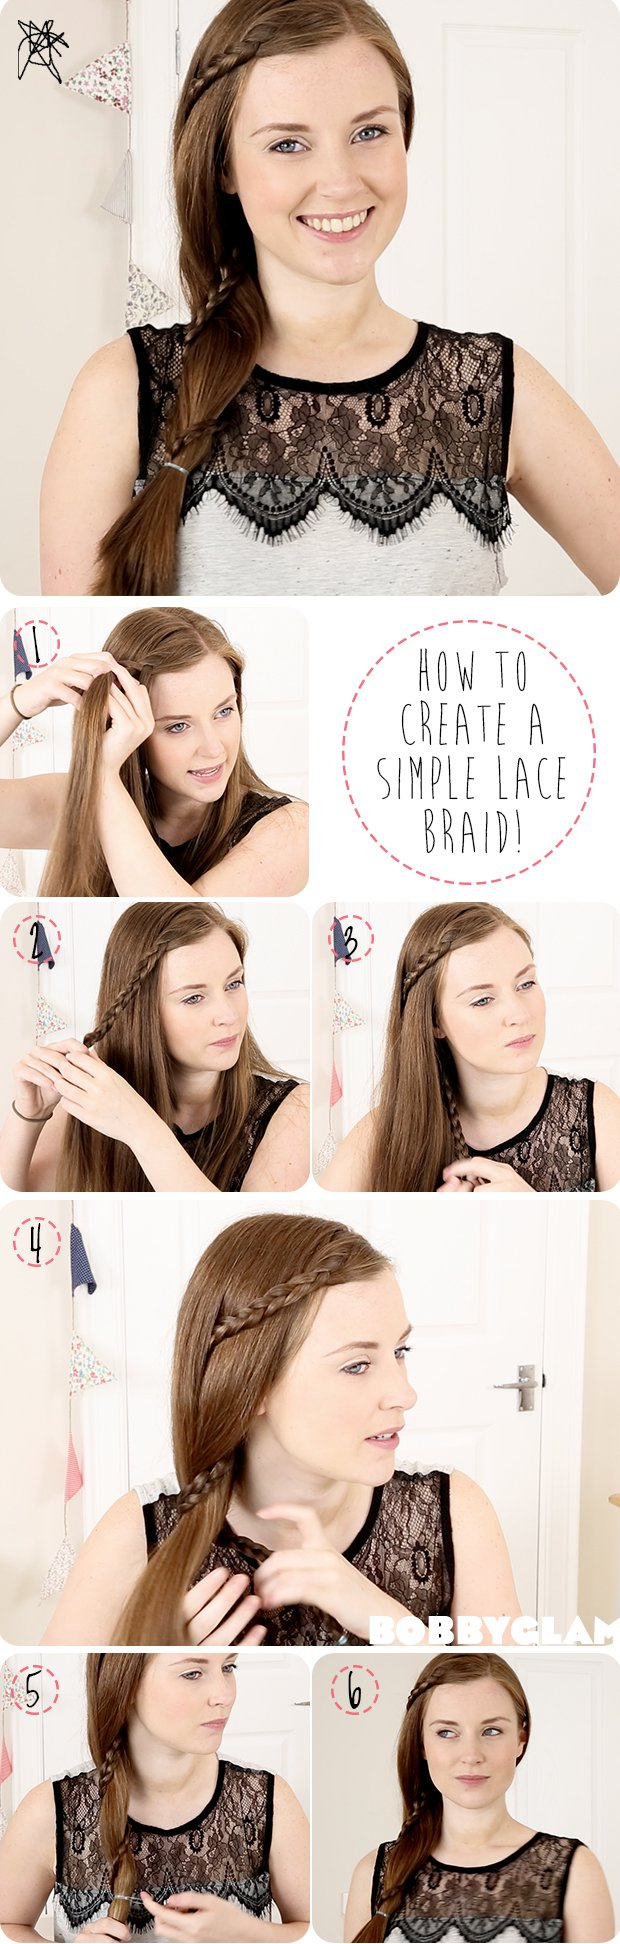 Sweet Lace Braided Hairstyle